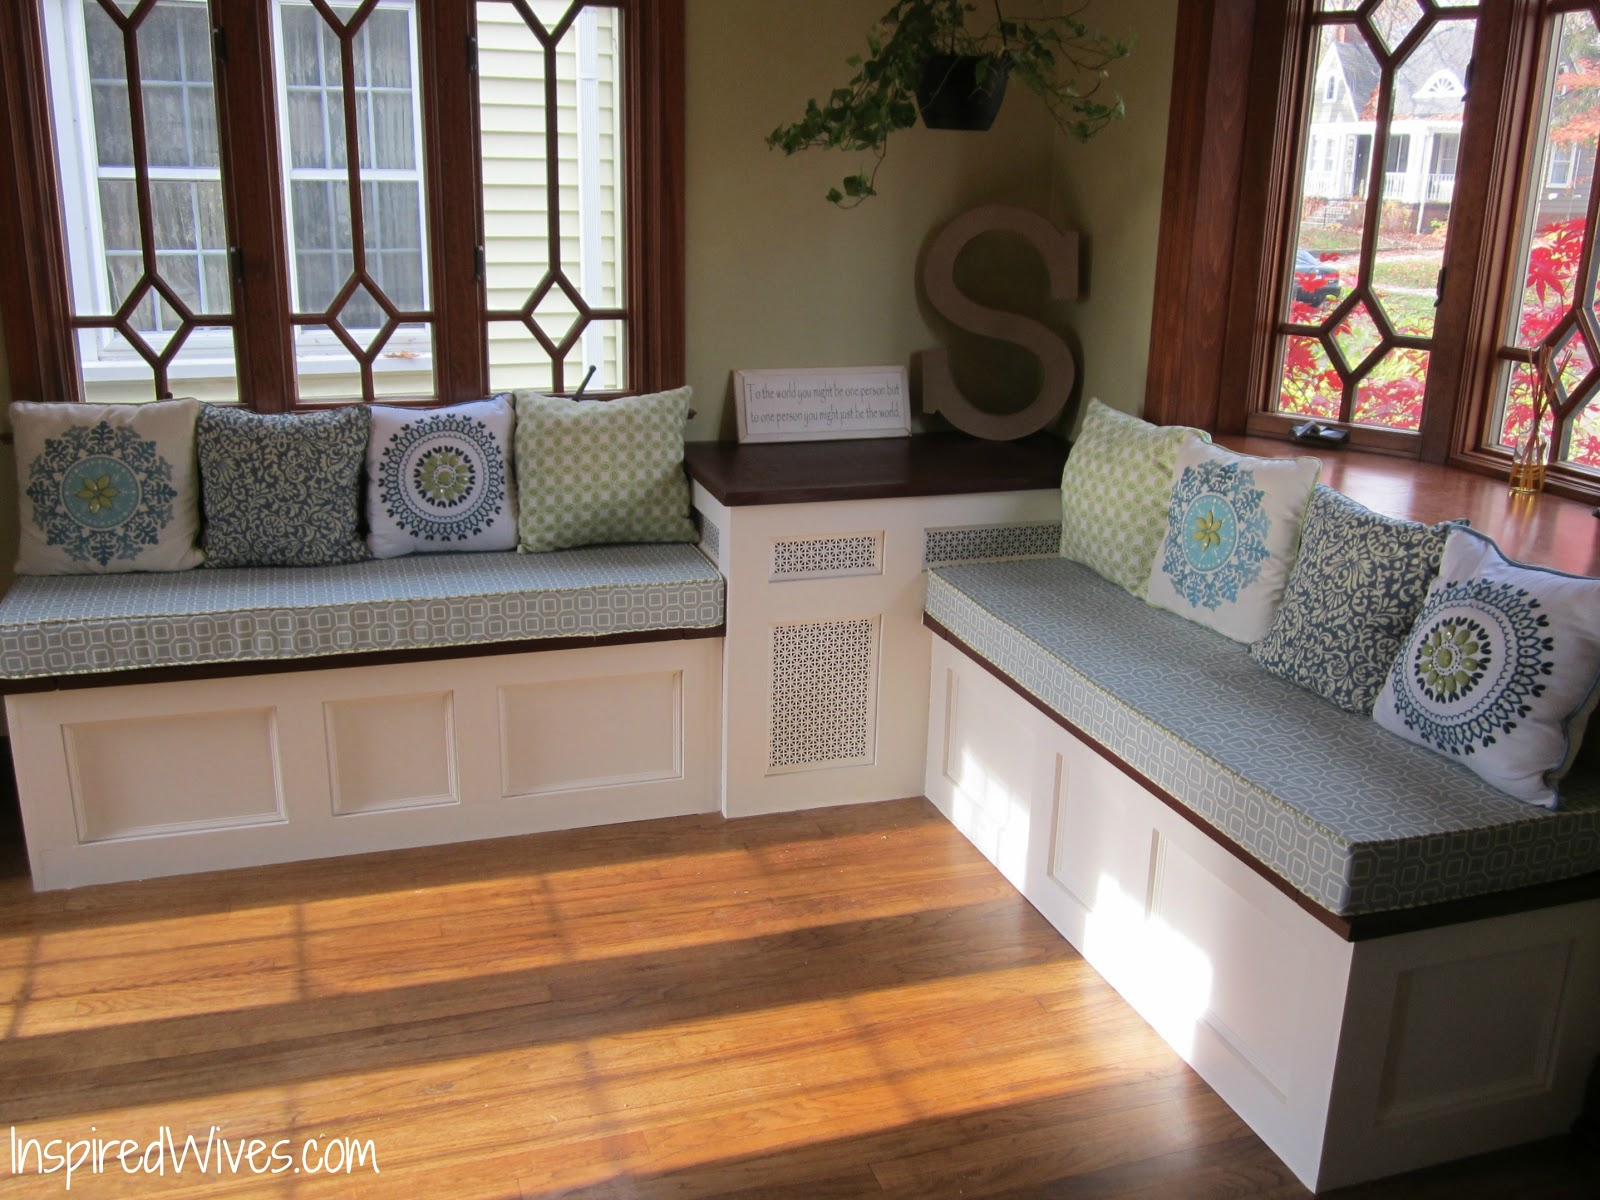 Built in kitchen bench design woodworktips - Kitchen bench designs ...